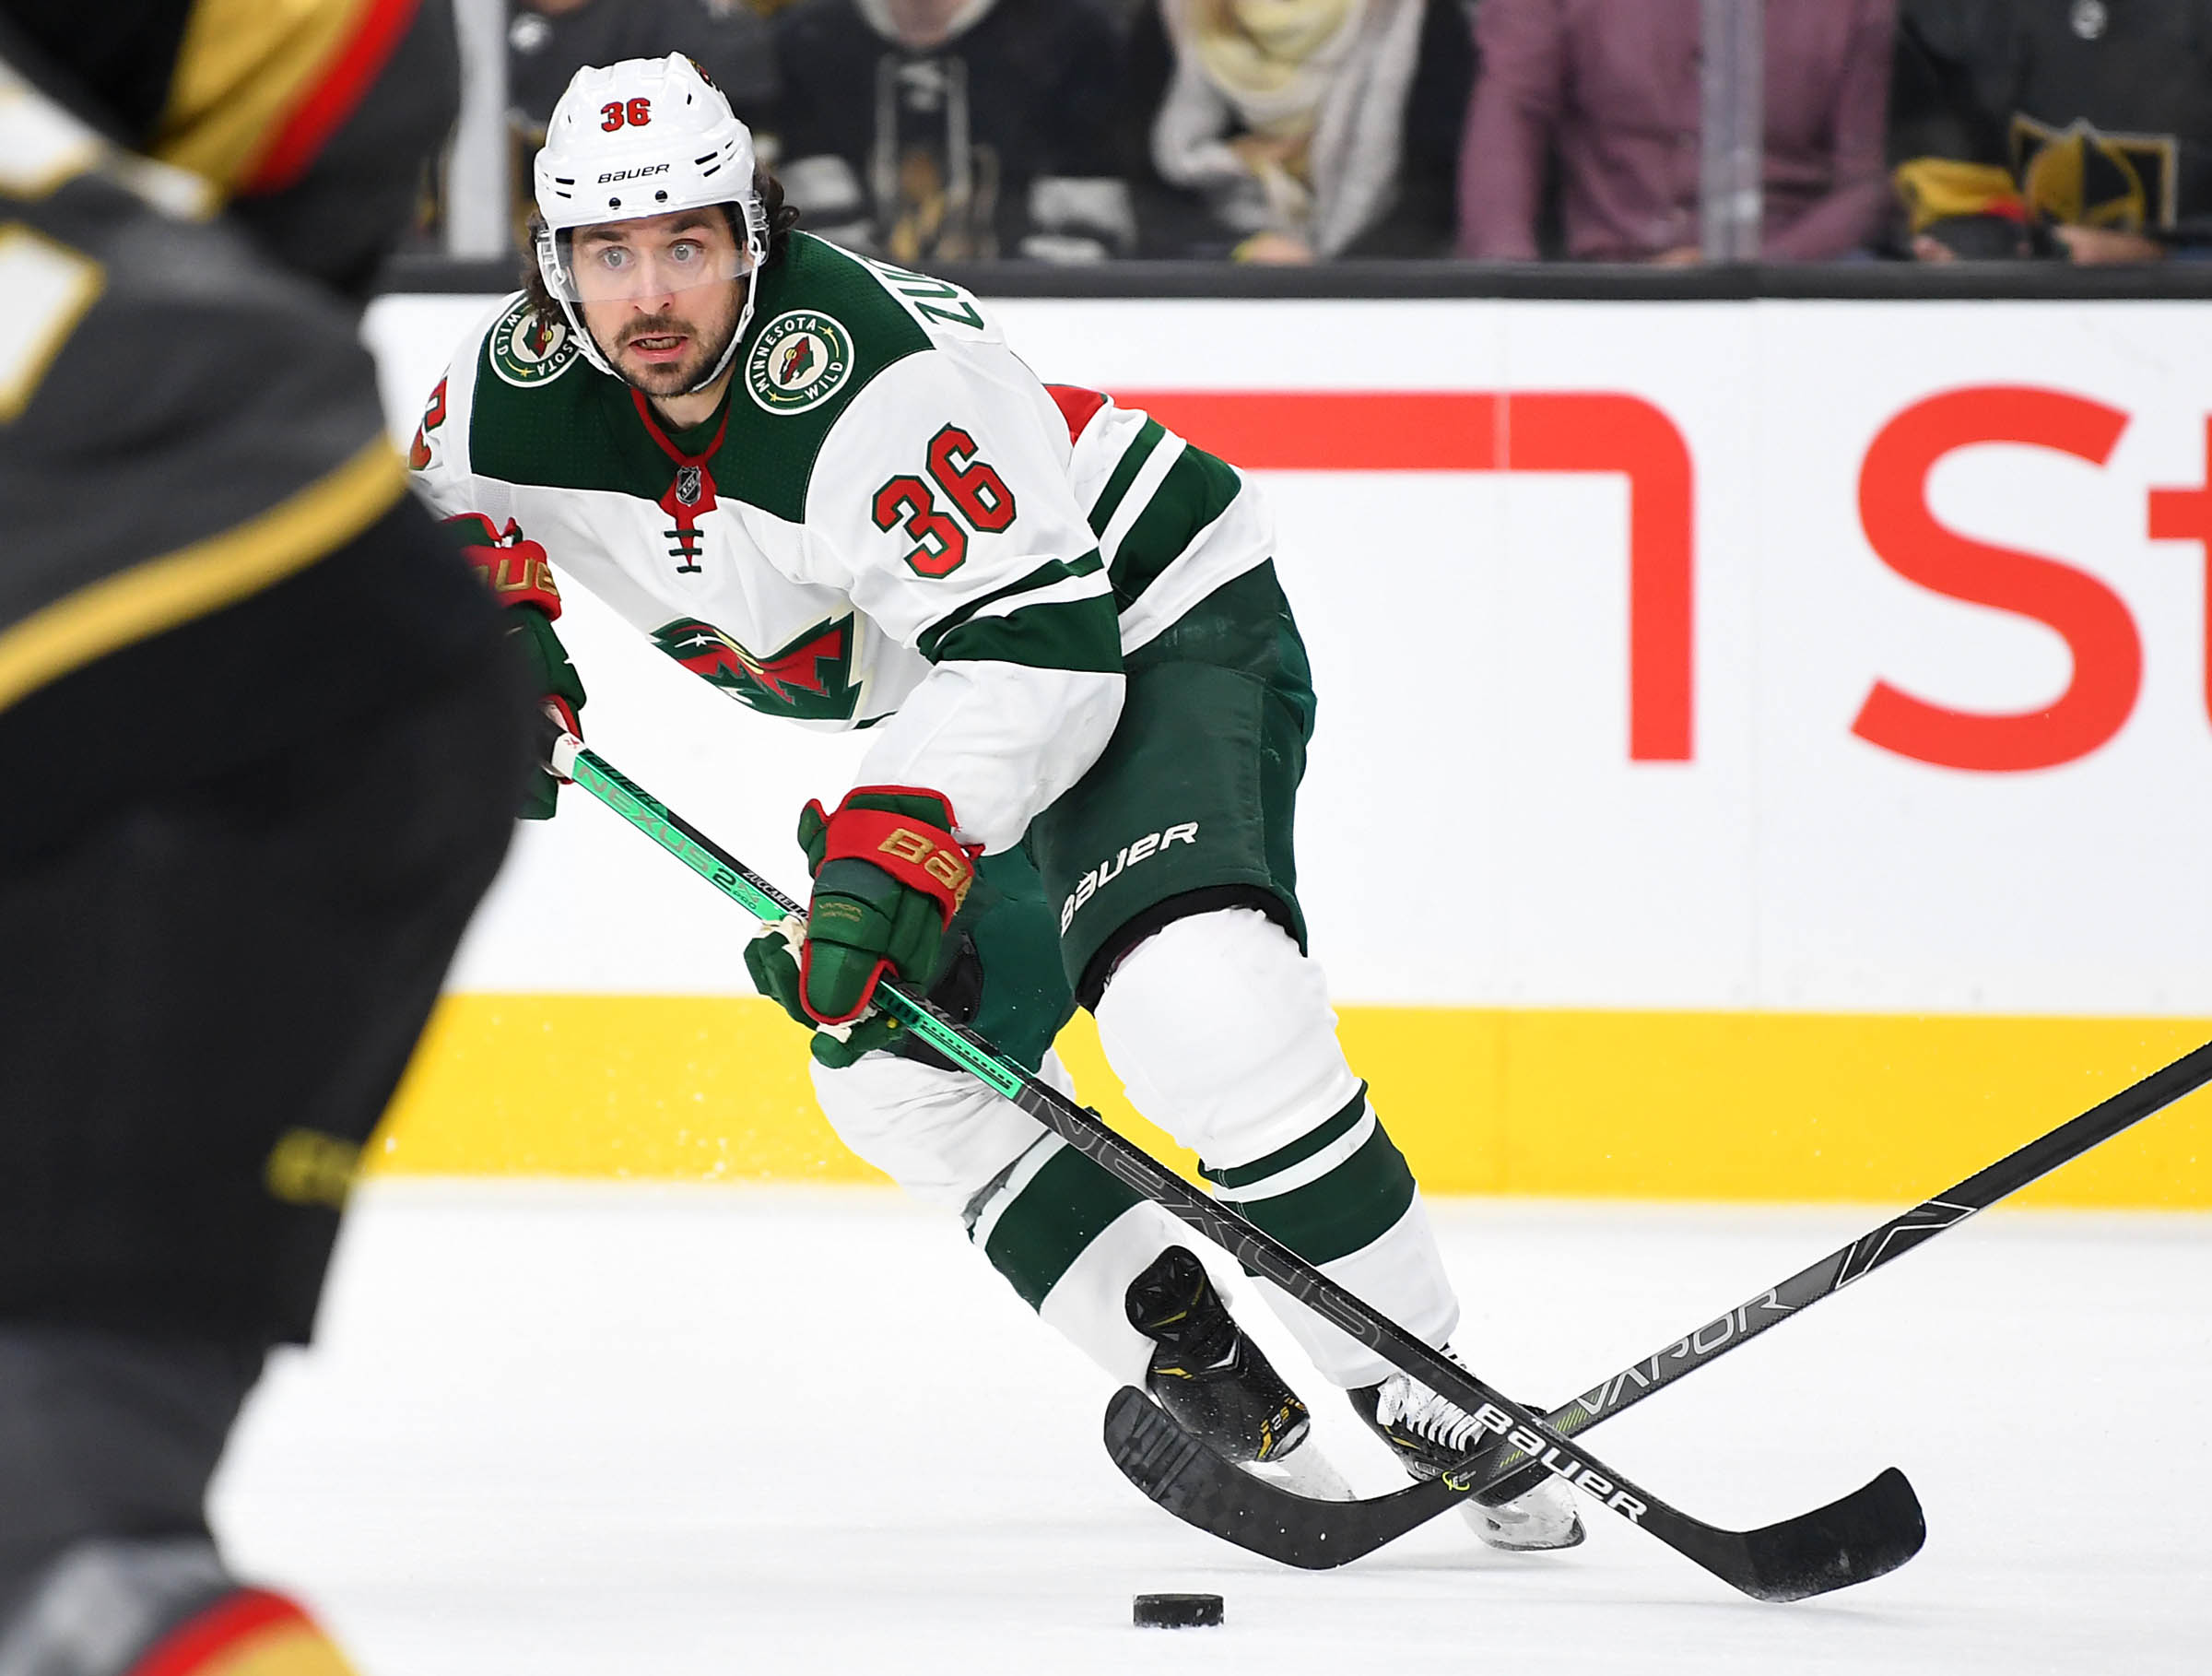 Game Preview: Minnesota Wild vs. Vegas Golden Knights 3/1/21 @ 9:00PM CST at T-Mobile Arena